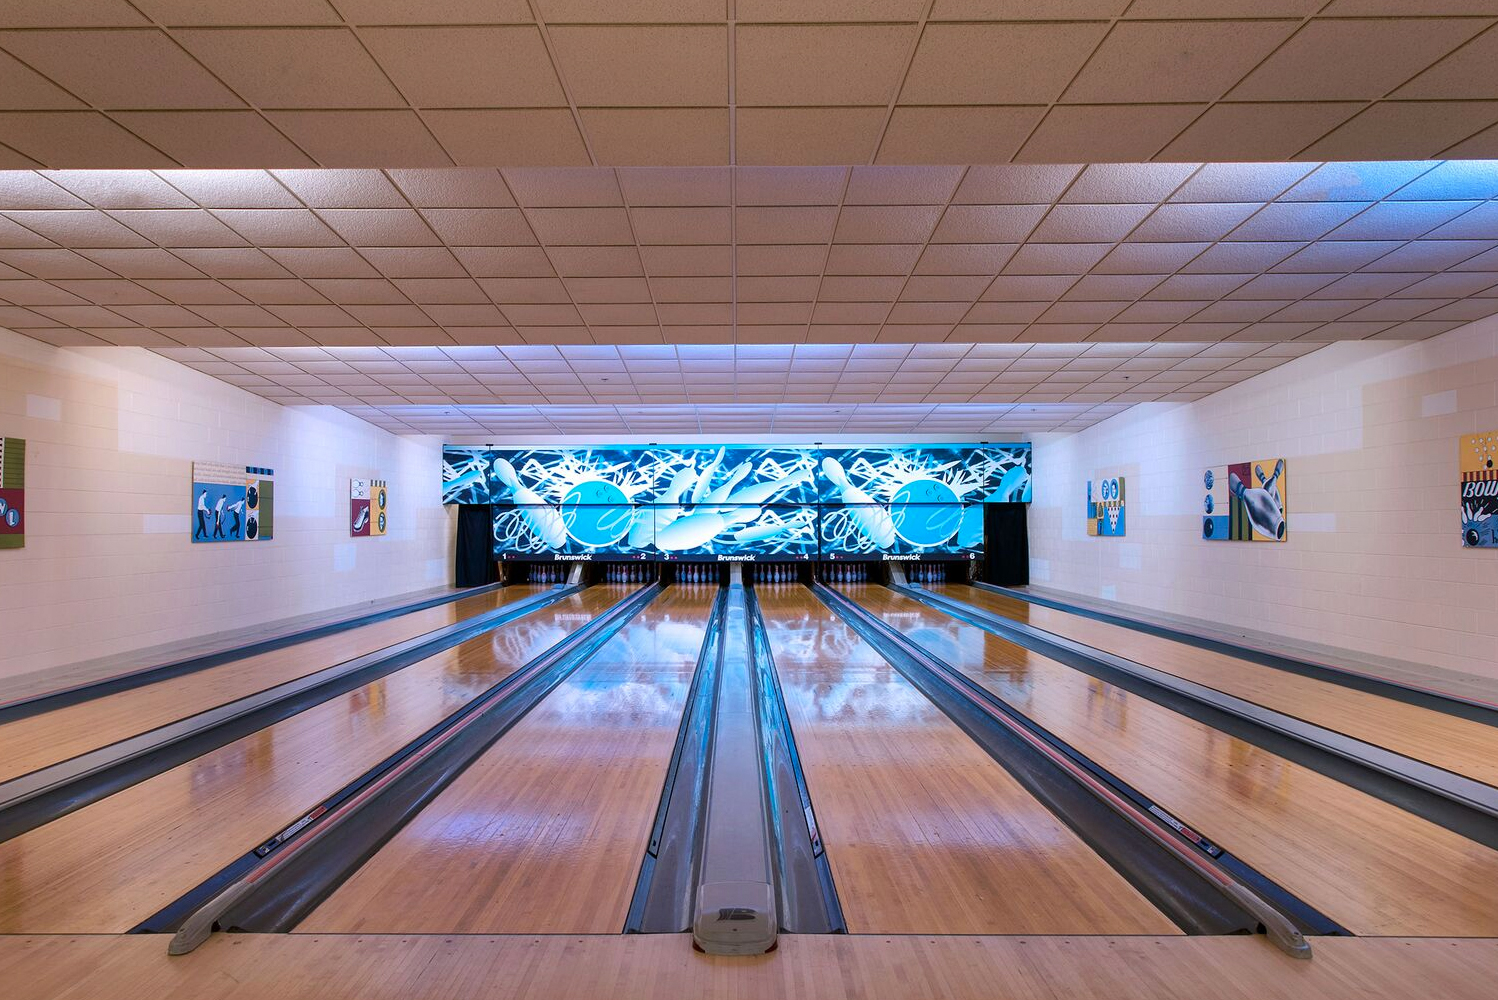 The property has Kegler's Bowling Alley, a six-lane bowling alley that also has billiards, darts and other games.